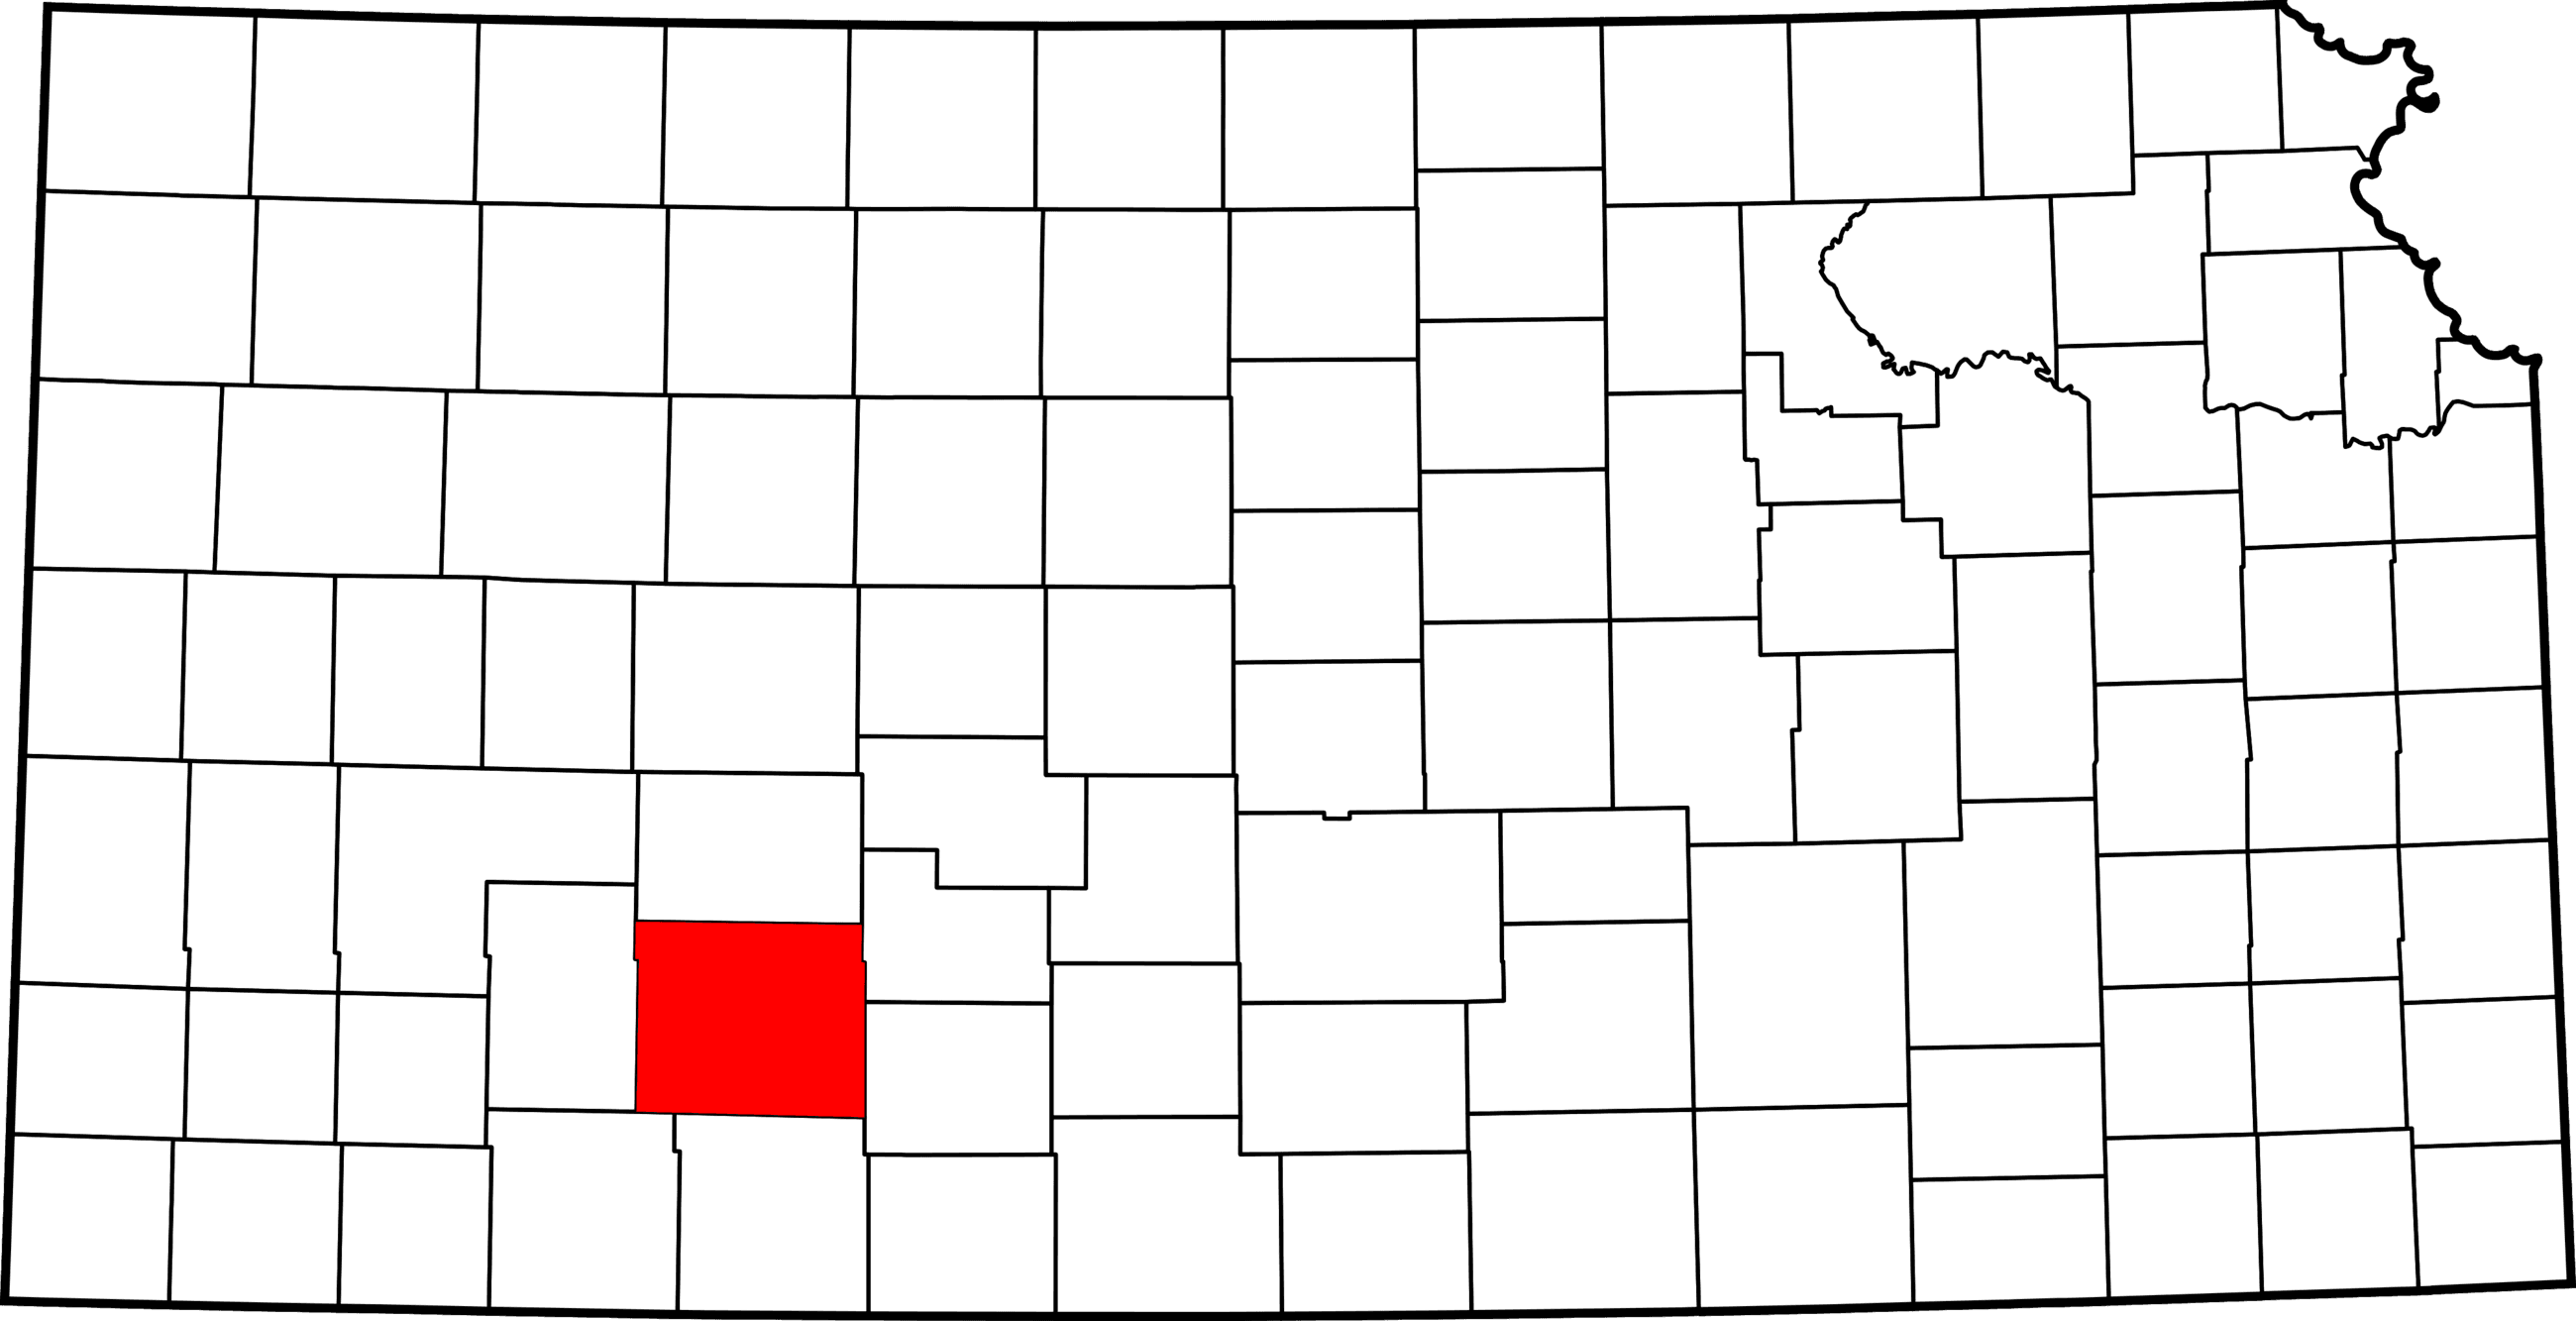 Ford County, KS Map